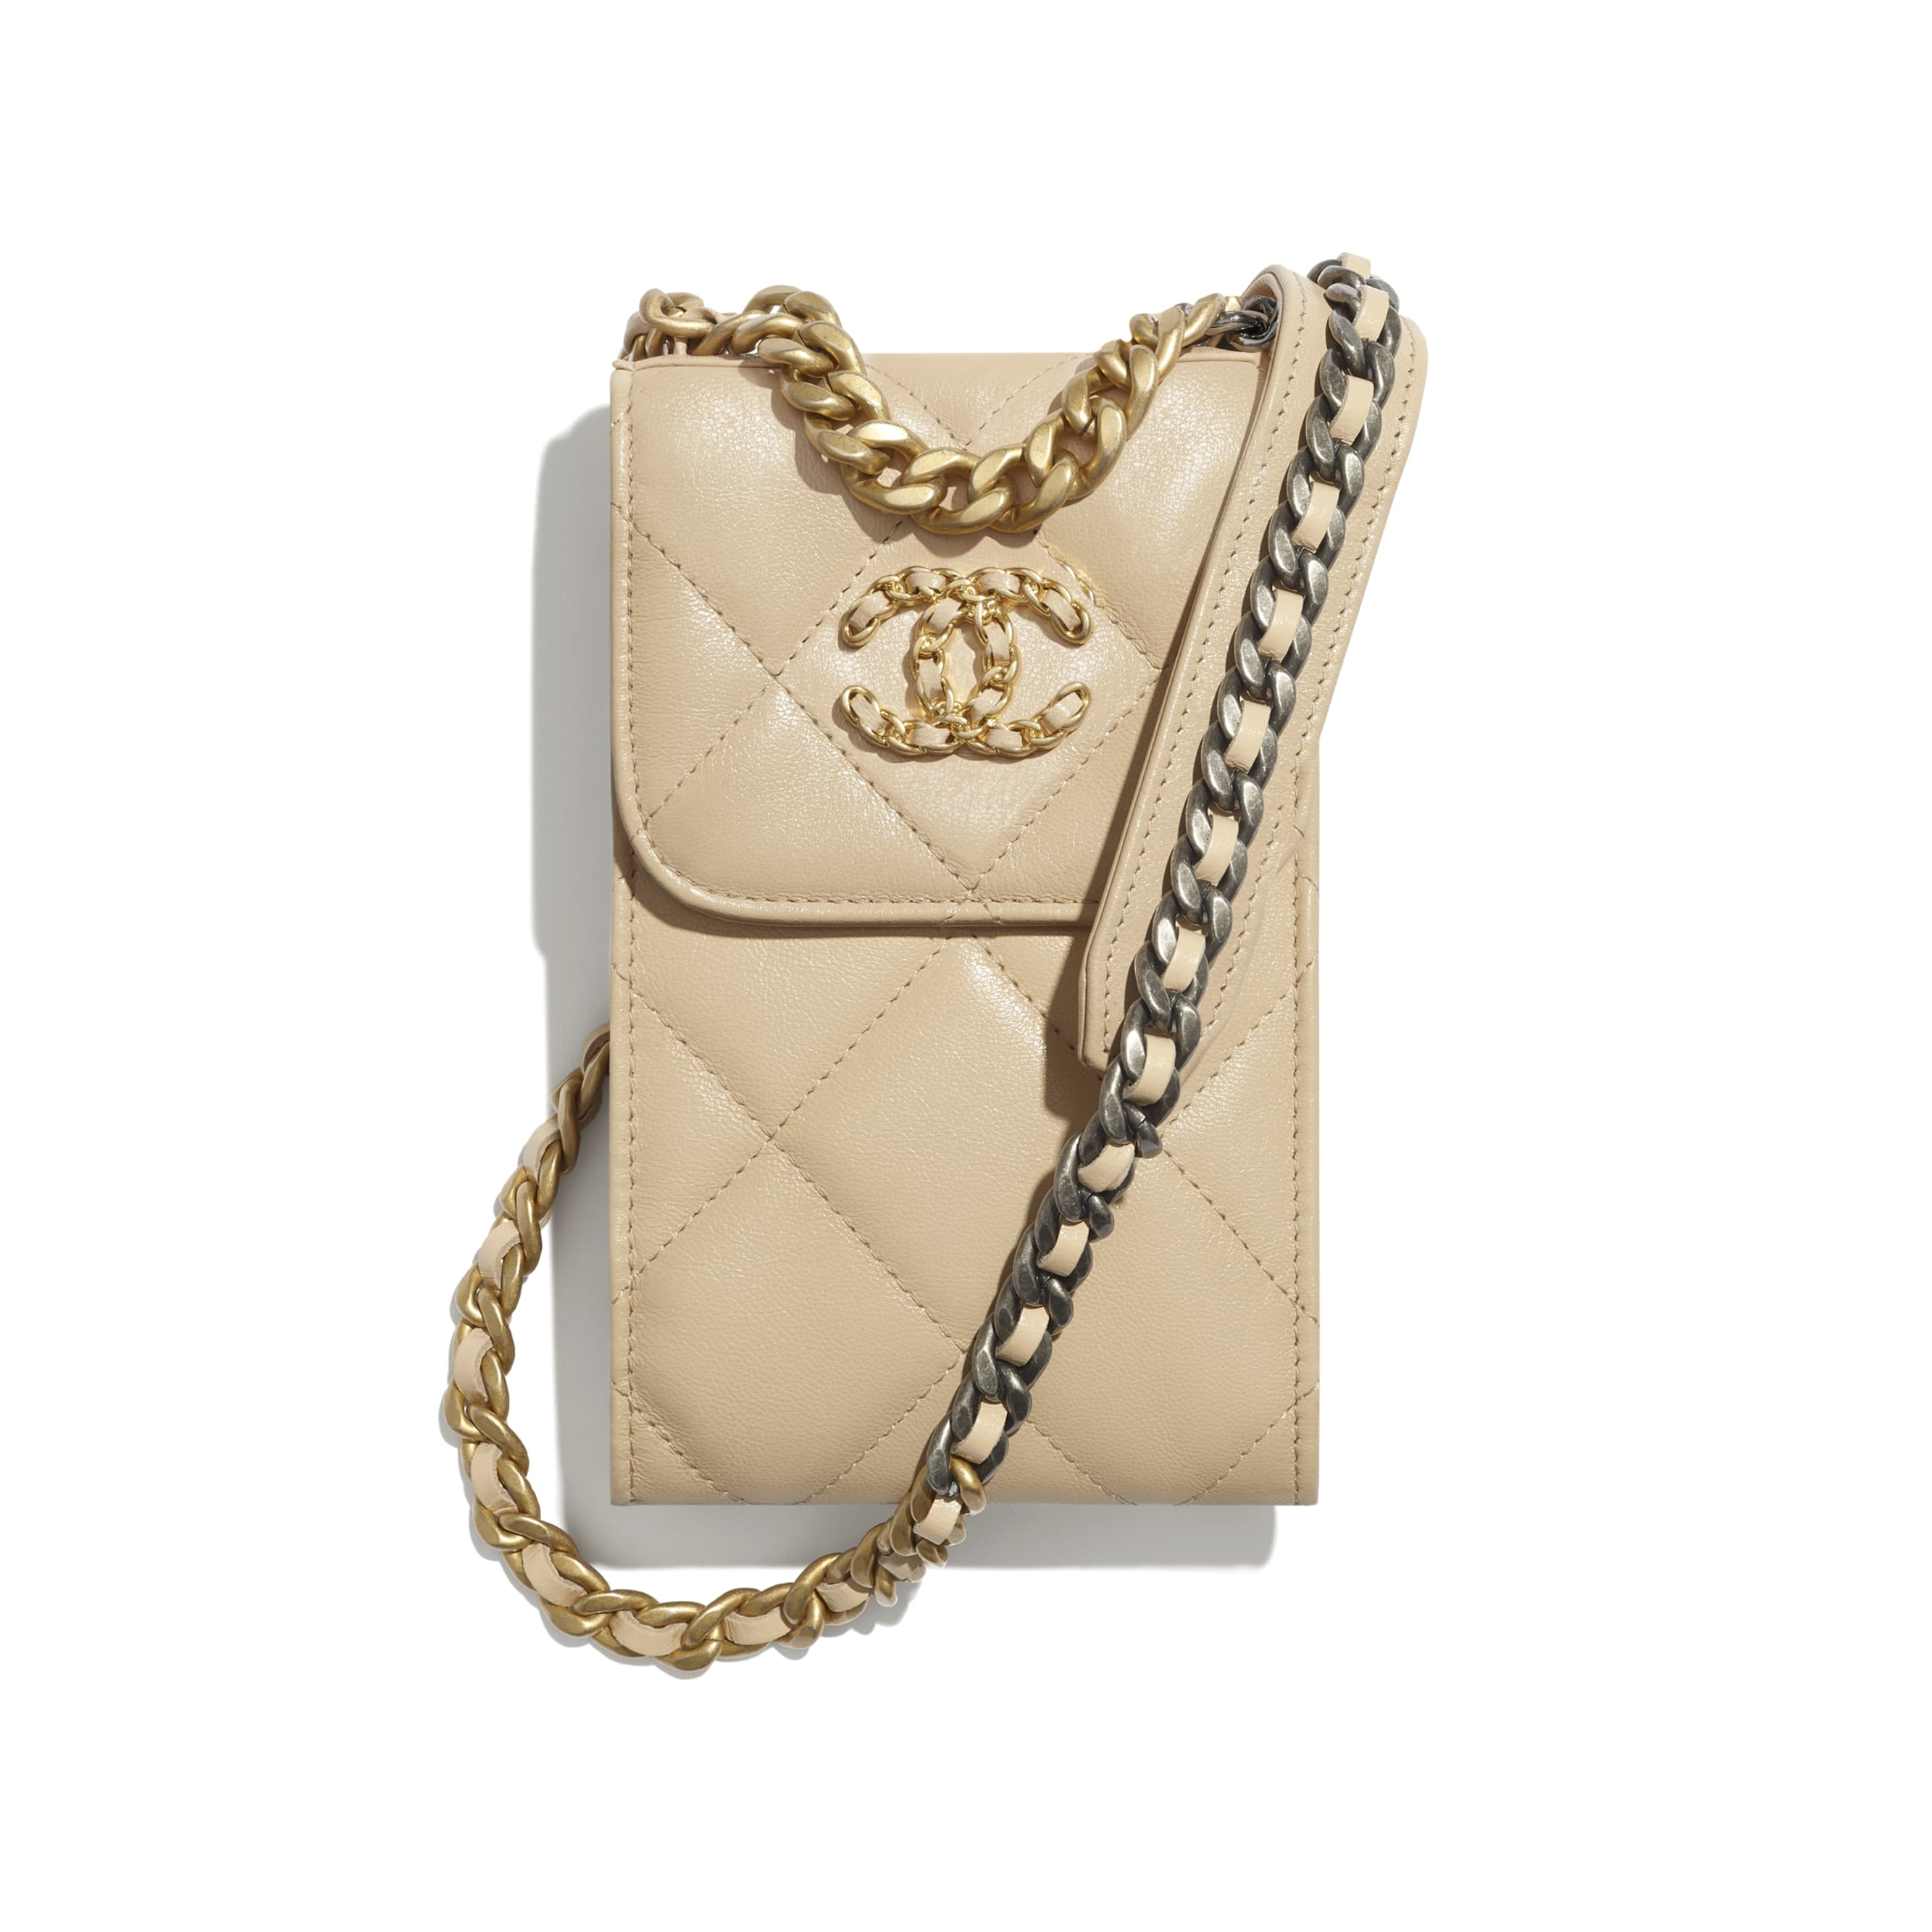 CHANEL 19 Phone Holder with Chain - Beige - Shiny Goatskin, Gold-Tone, Silver-Tone & Ruthenium-Finish Metal - CHANEL - Default view - see standard sized version